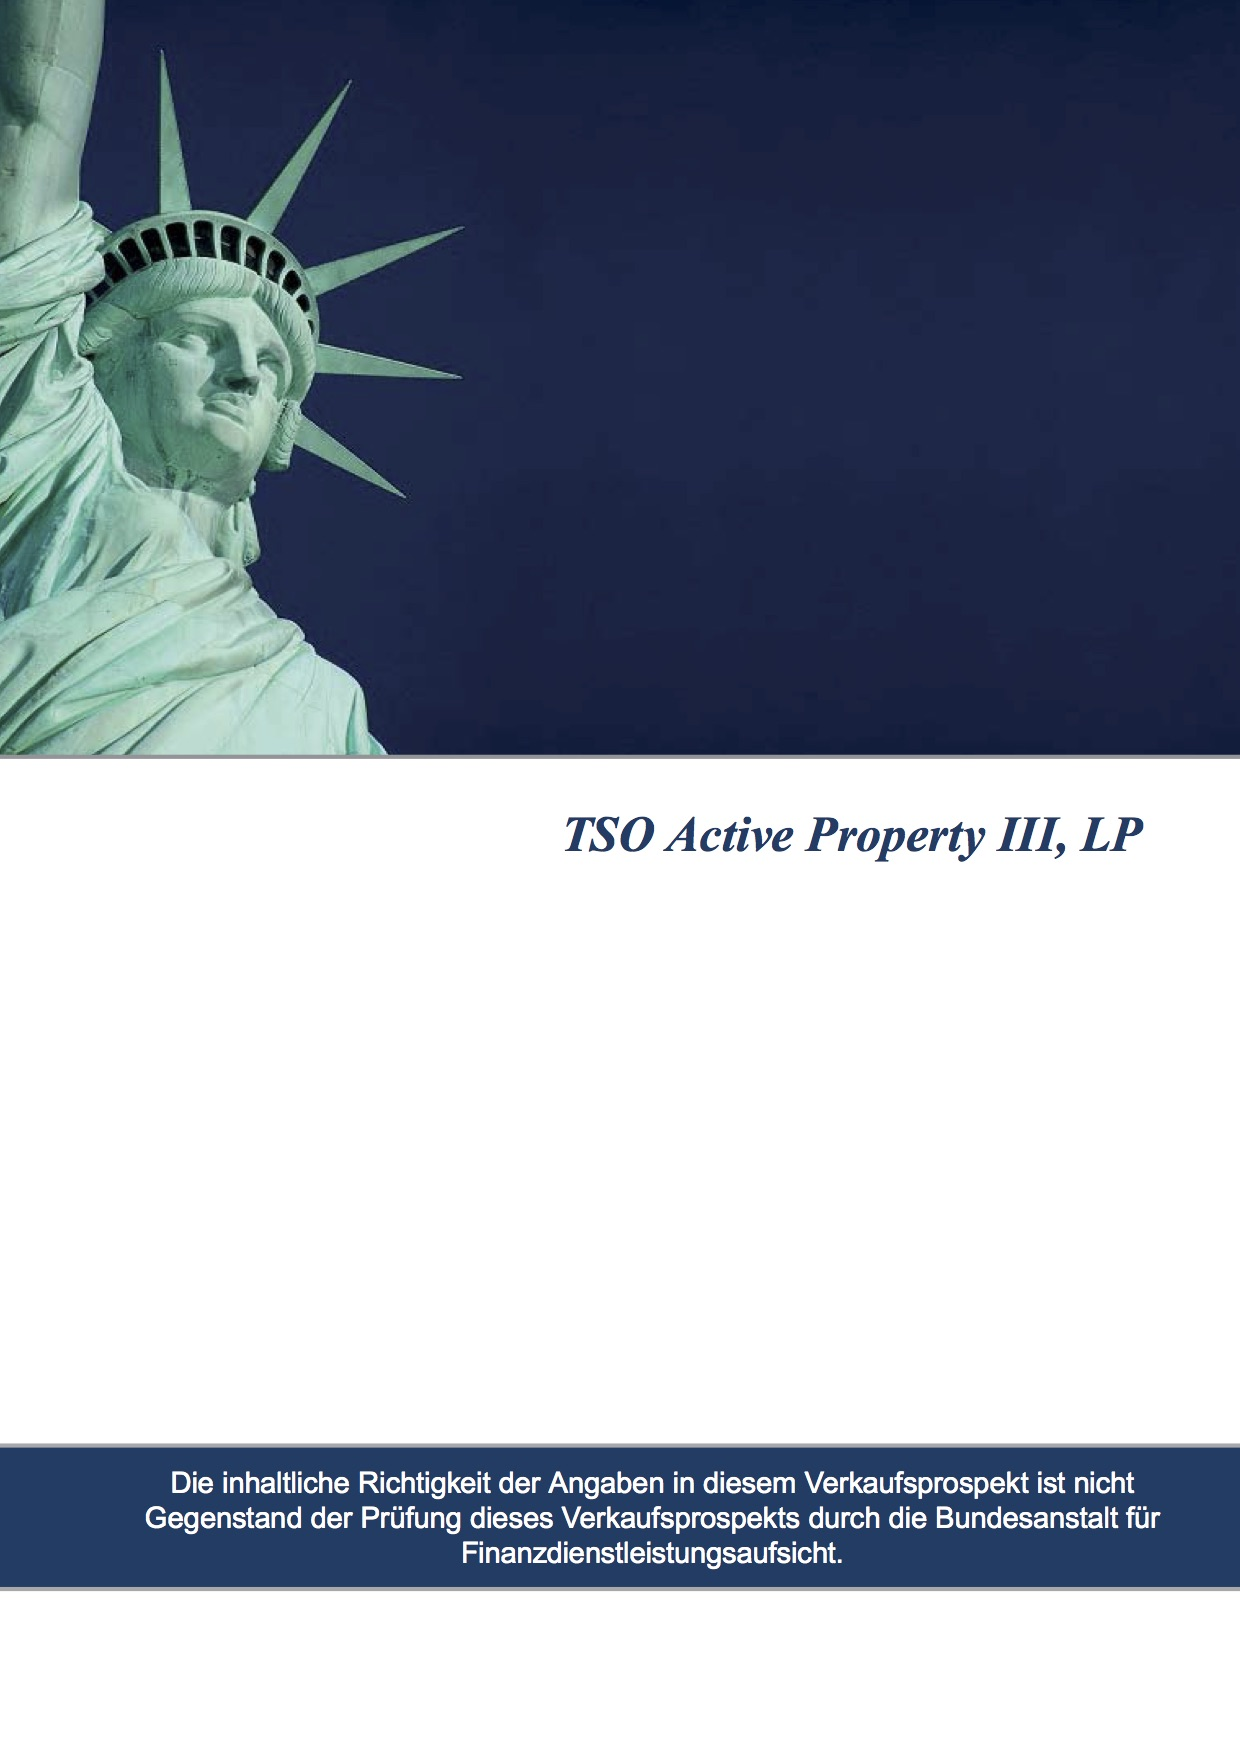 TSO Active Property III, LP